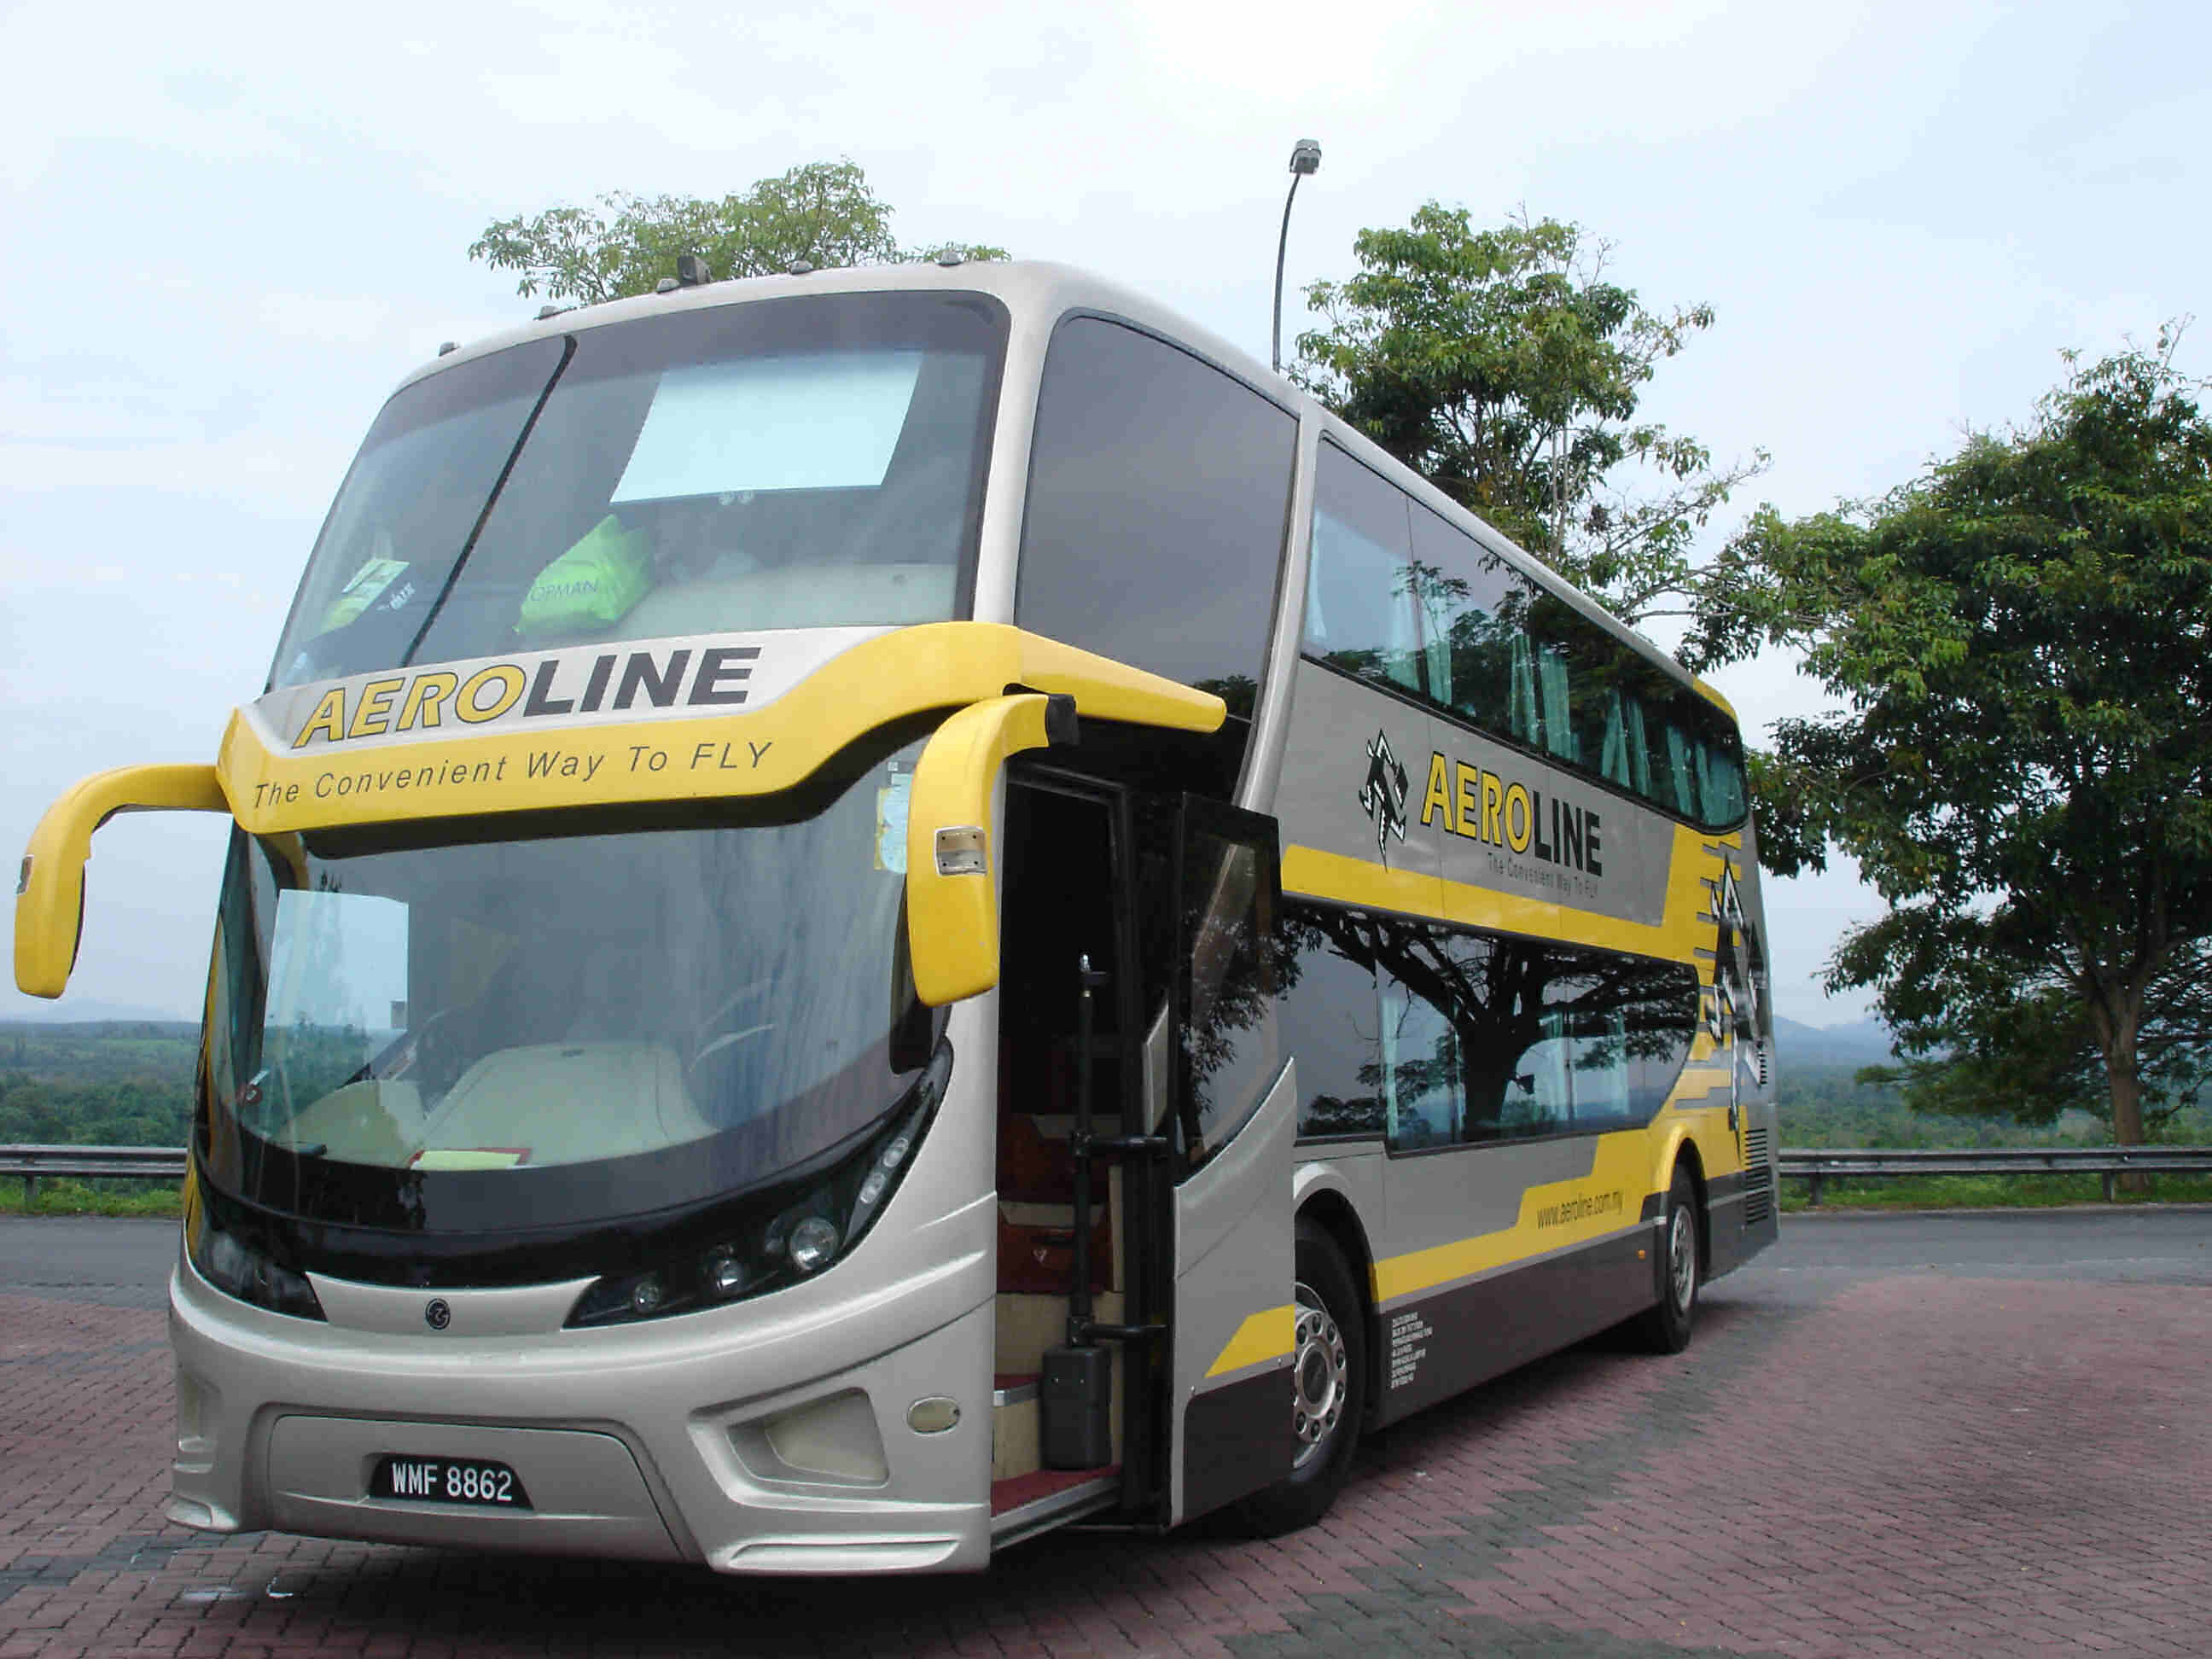 Bus from Singapore to KL